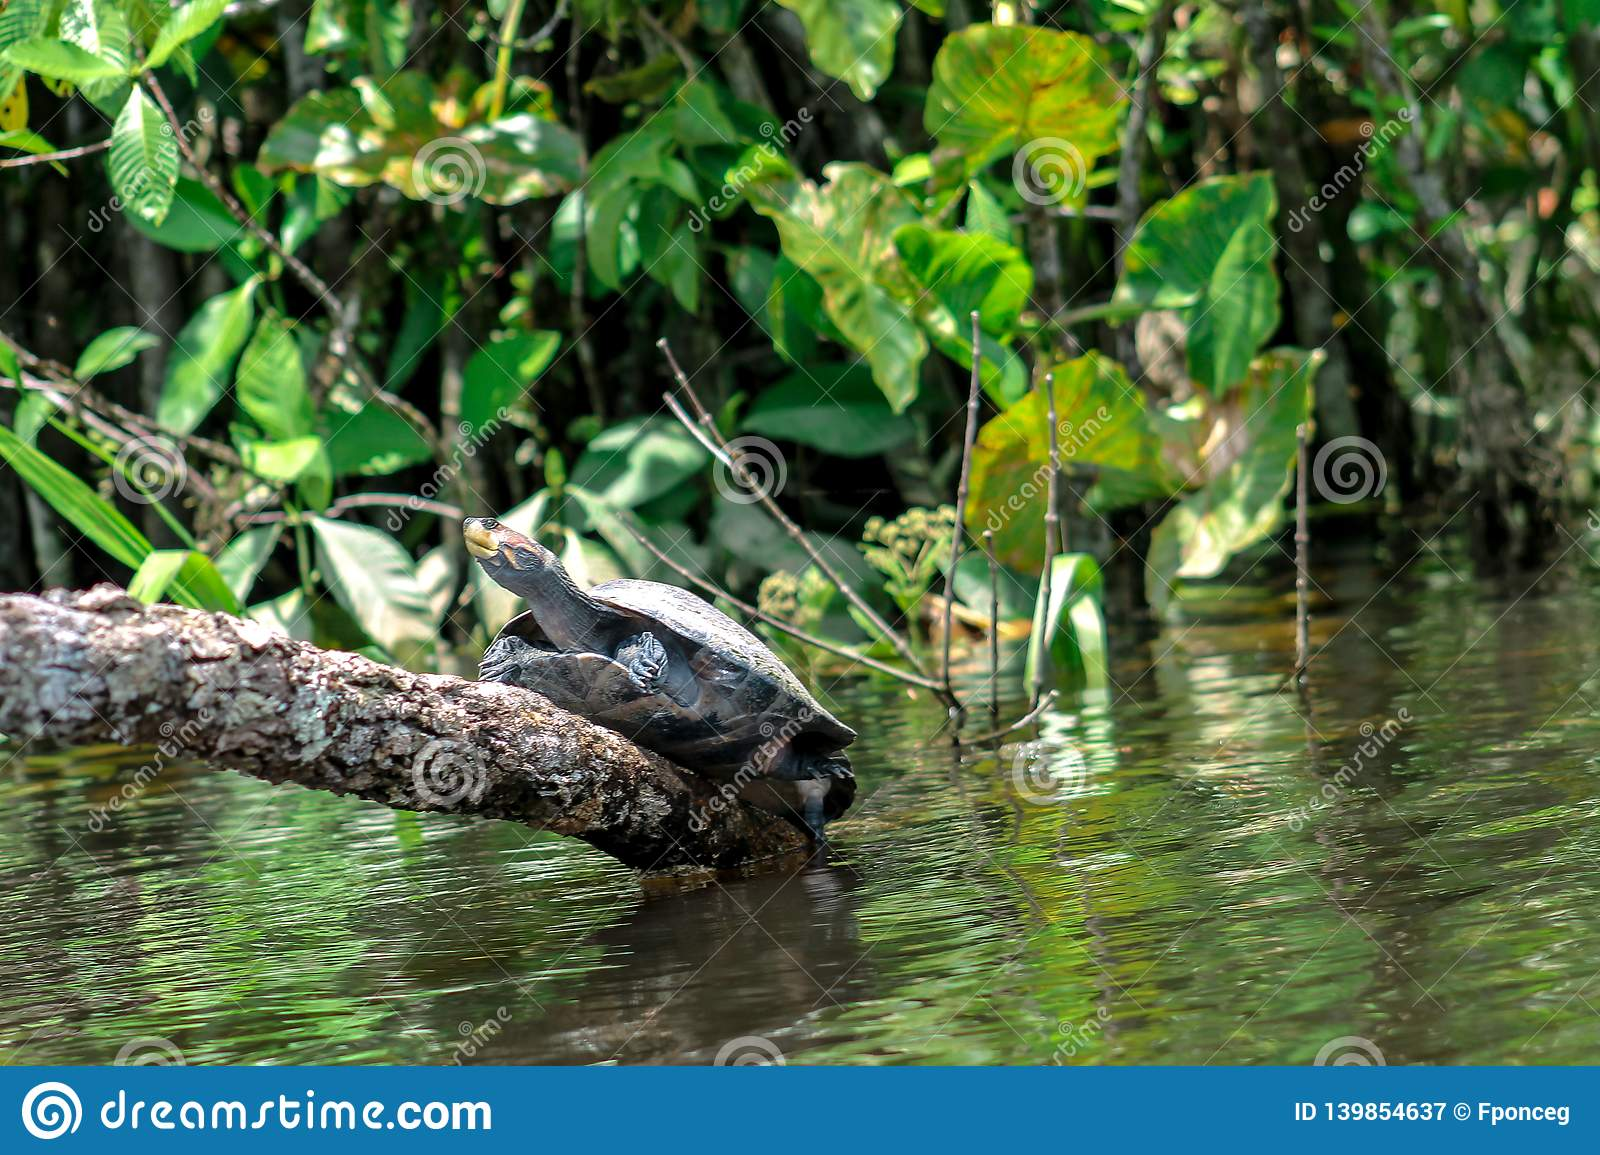 Turtle climbing up a log over the river in the jungle